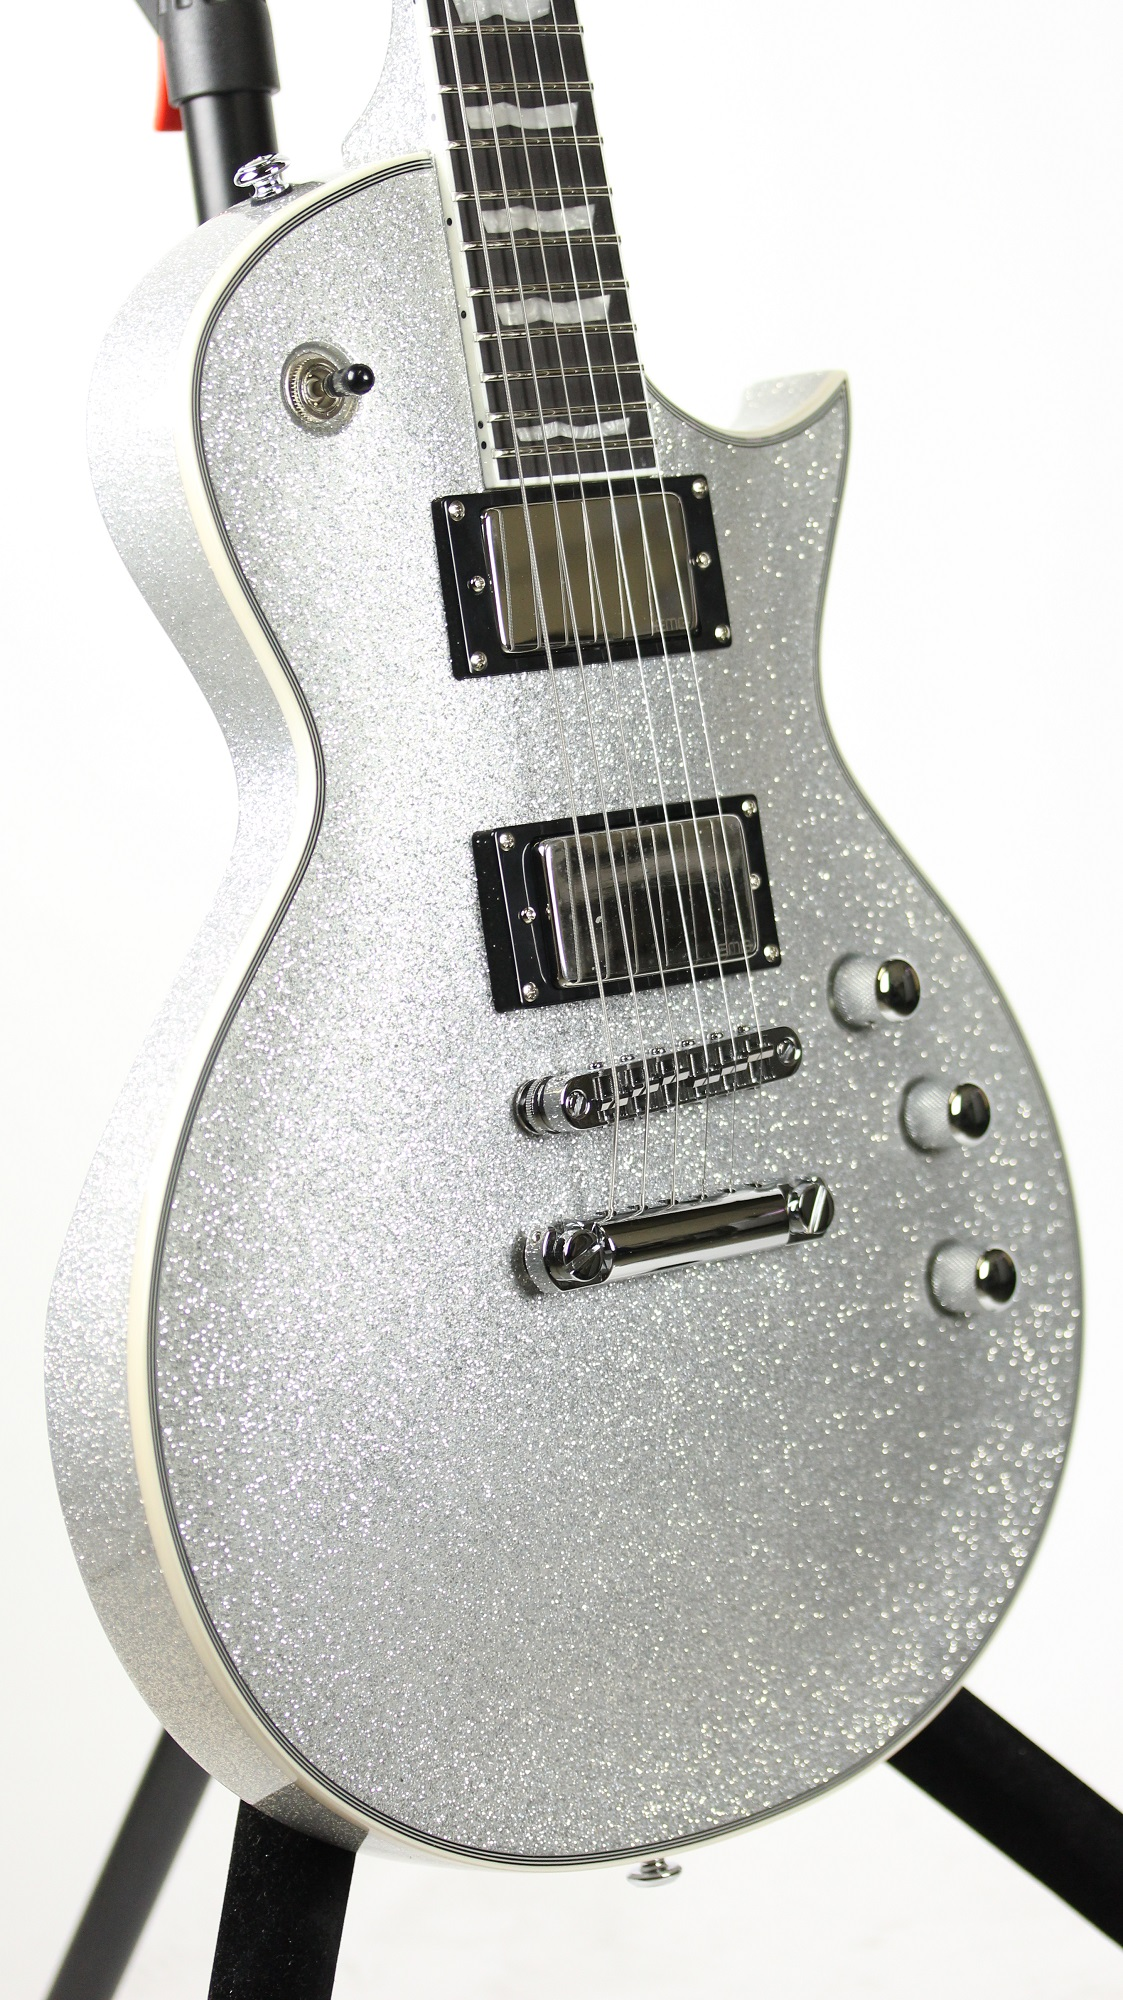 esp ltd ec 1000 ssp silver sparkle deluxe series electric guitar 6. Black Bedroom Furniture Sets. Home Design Ideas